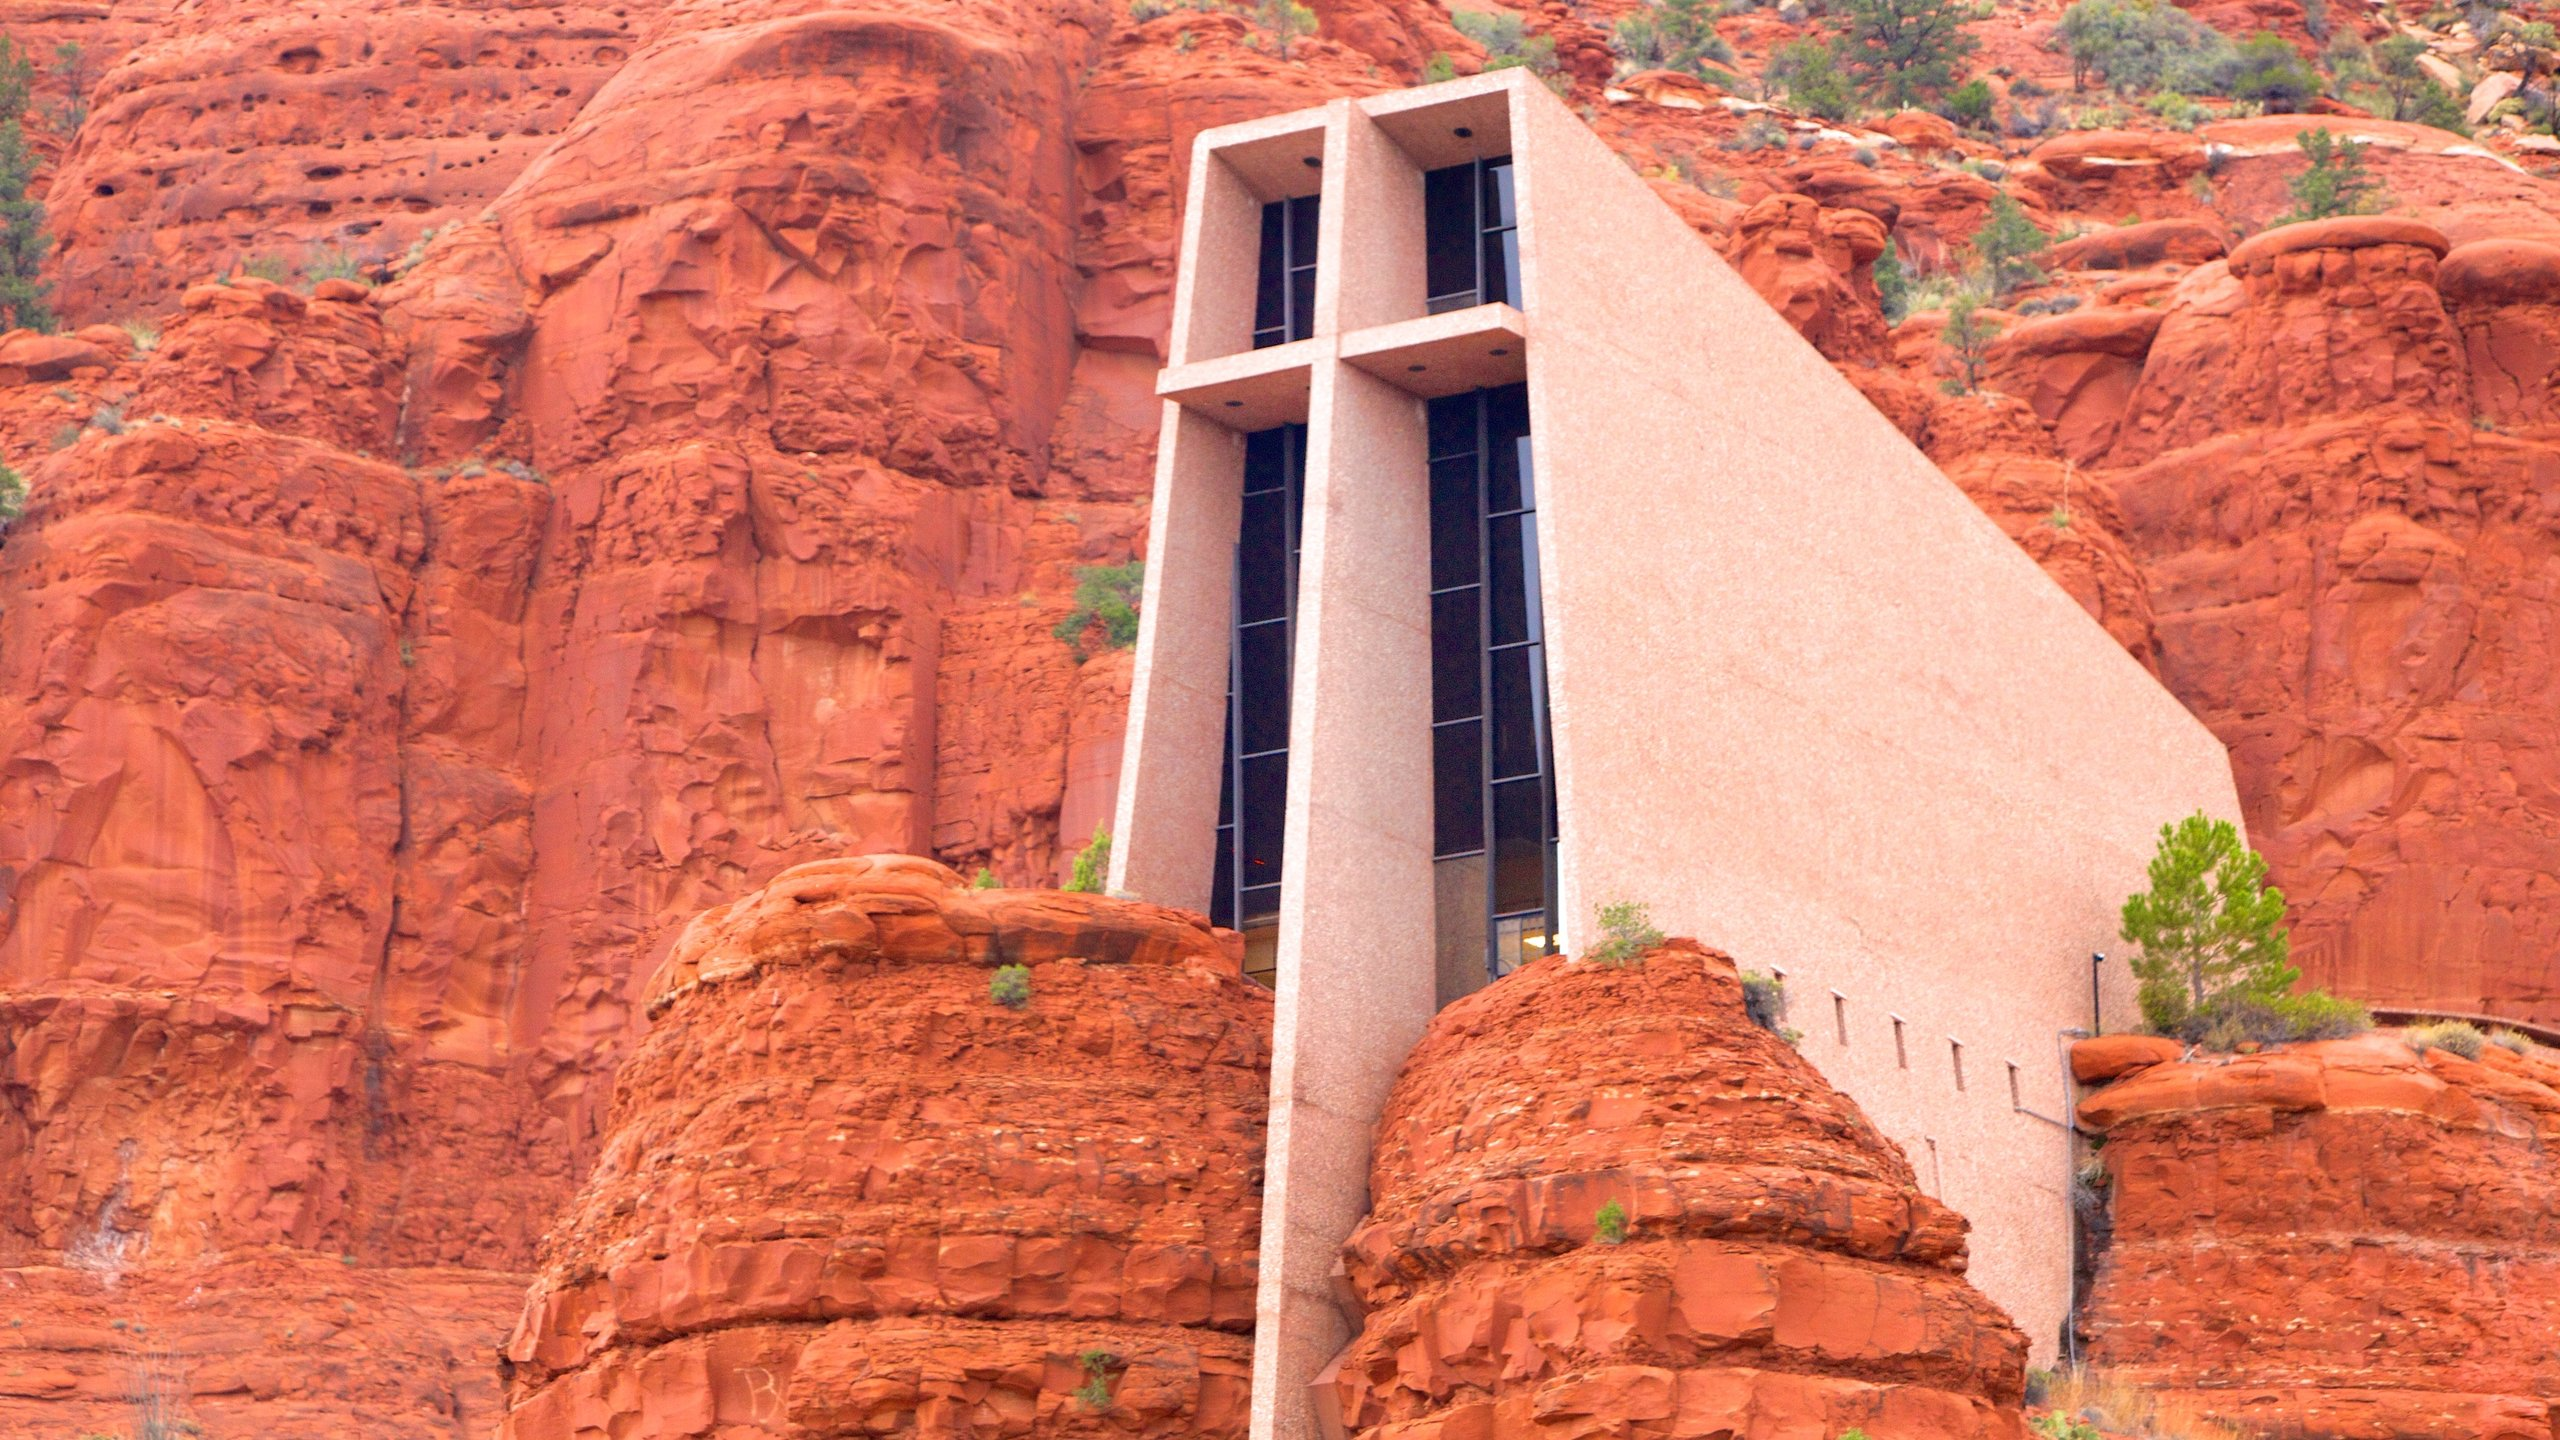 Emerging from one of Sedona's famous walls of red rock, this chapel is a spectacular sight to behold.